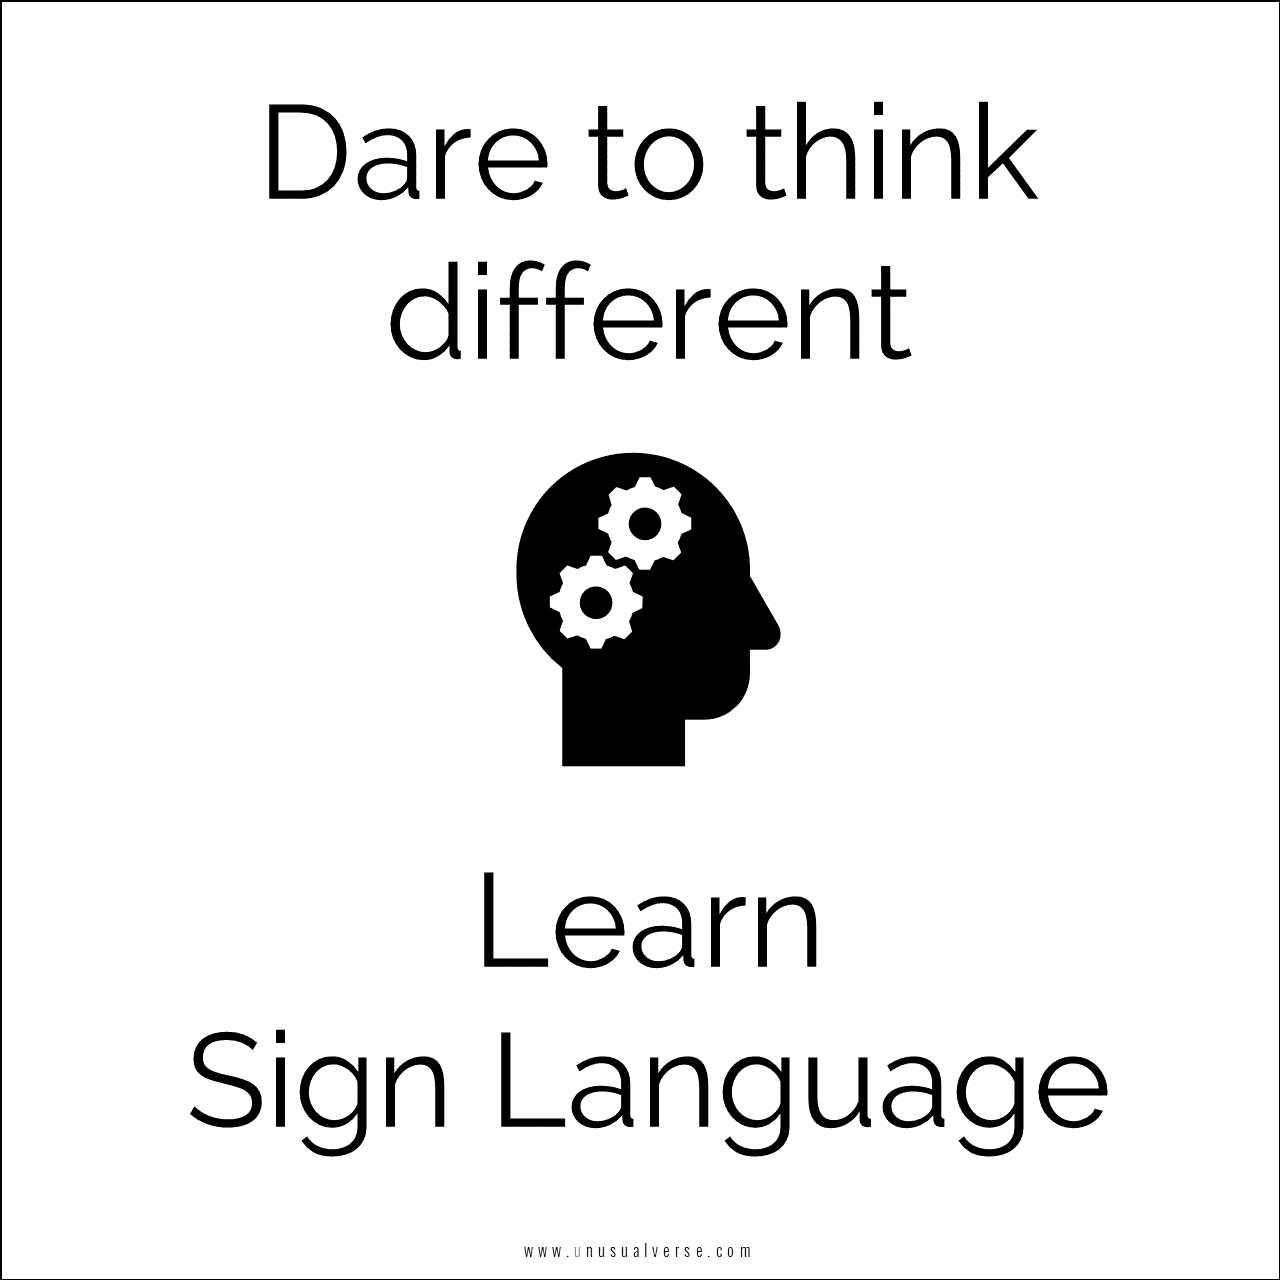 Dare to think different. Learn Sign Language